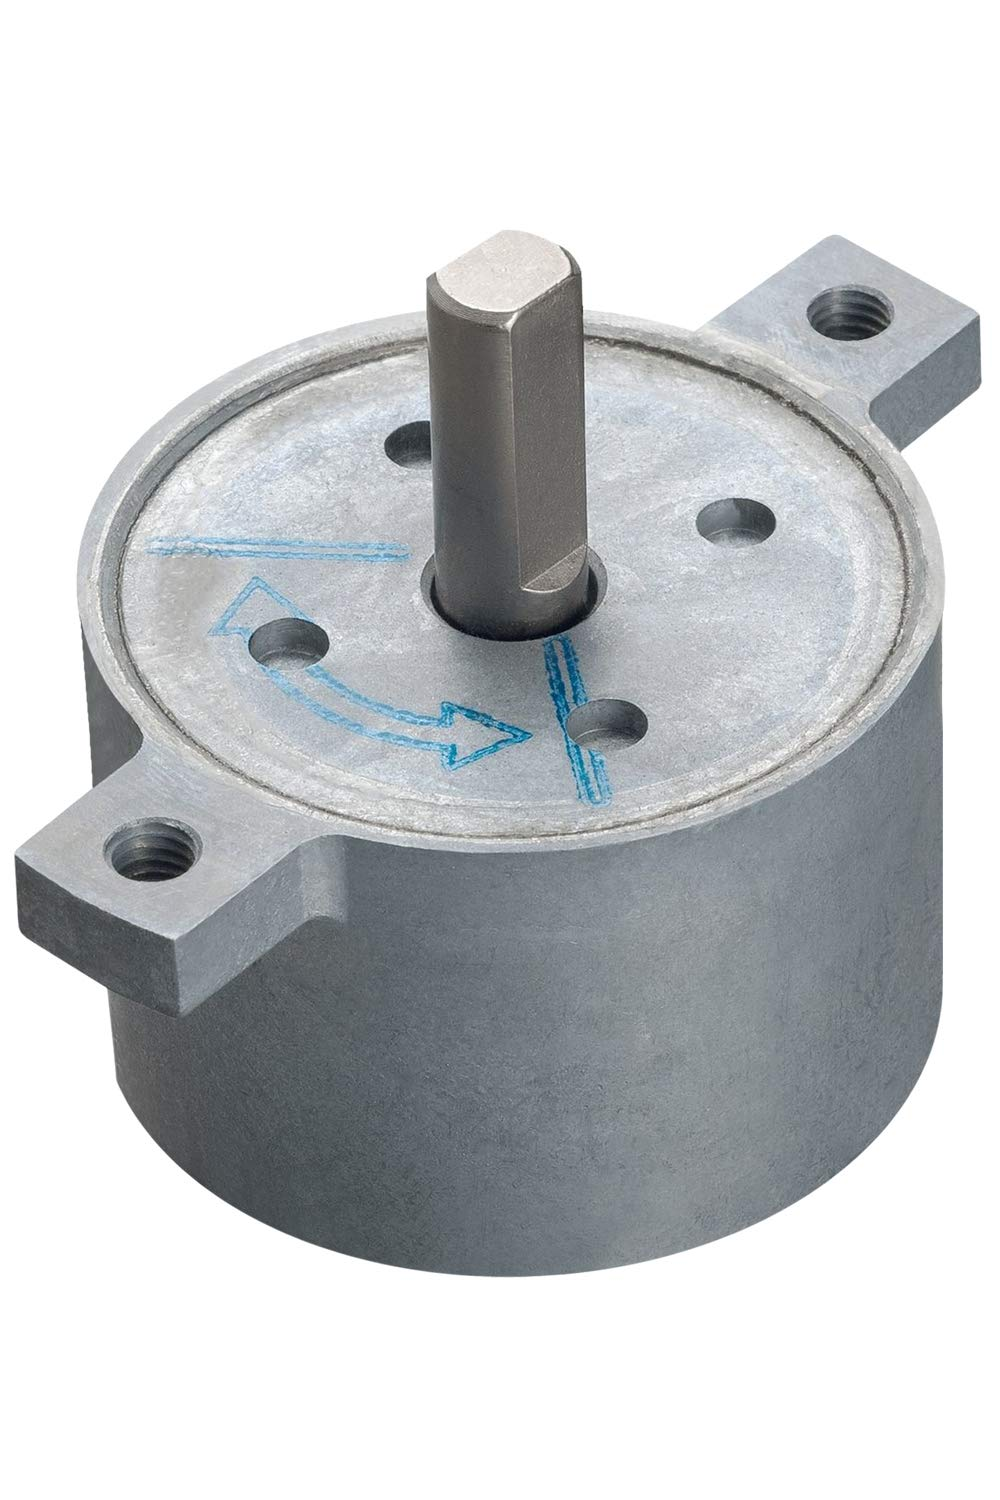 Bansbach Easylift FYT-D1-104 Rotary Dampers/Vane Type, 66 mm x 44.5 mm x 50 mm